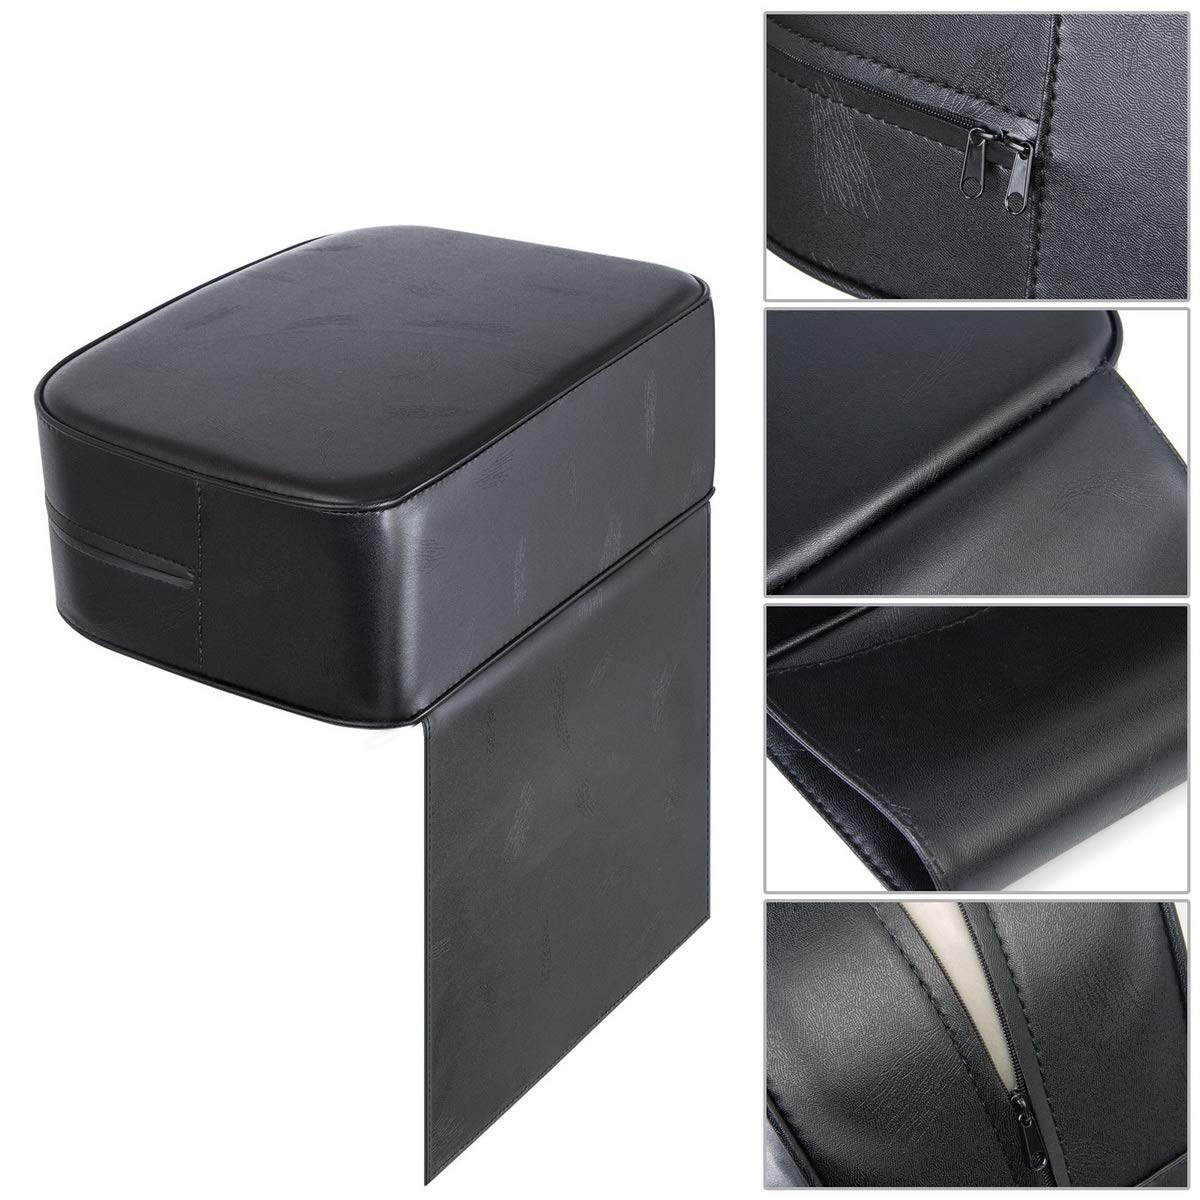 Salon Booster Seat Cushion for Child Hair Cutting, Cushion for Styling Chair, Barber Beauty Salon Spa Equipment Black: Beauty